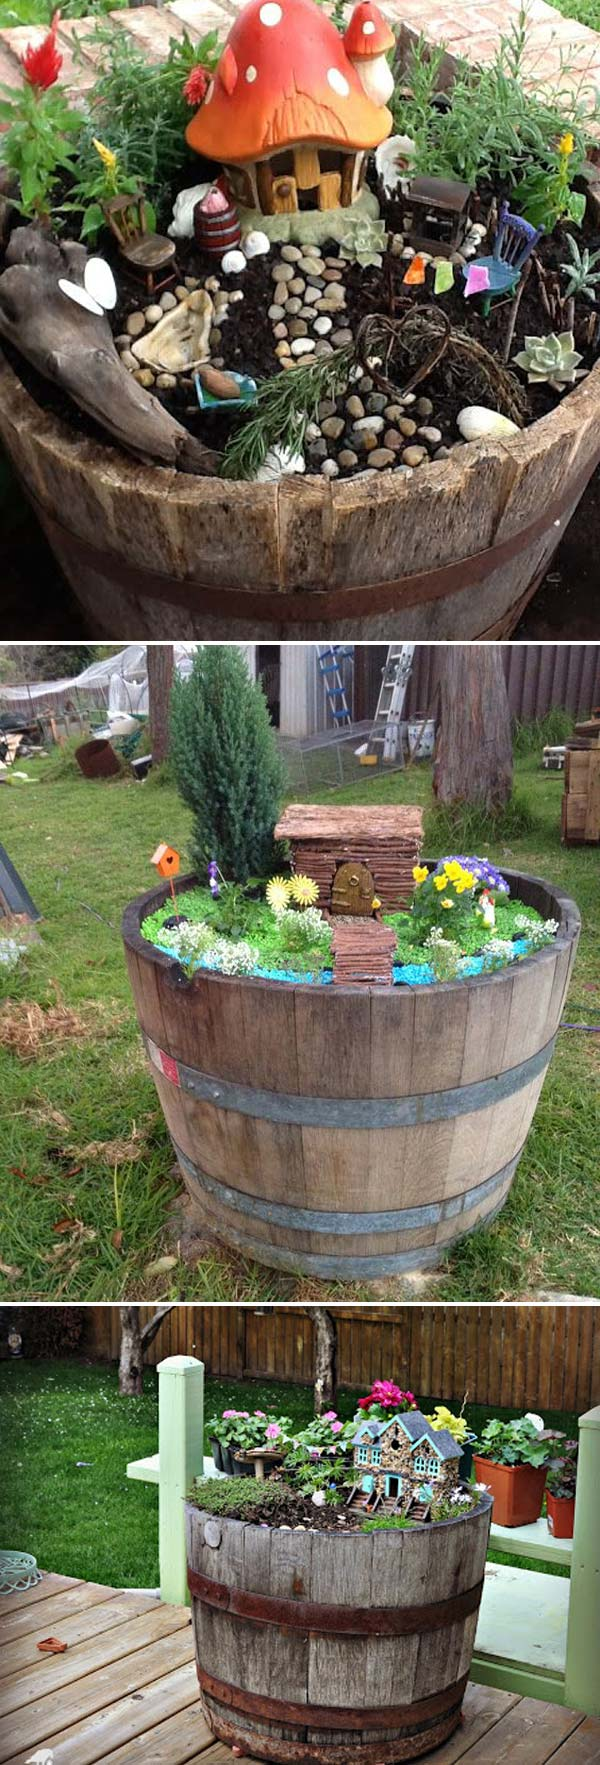 Staggering Fairy Gardens Throw Away Those Broken Wine Y Can Be Turned To Fairy Gardens Created By Recycled Things Pics Fall Fairy Gardens garden Pics Of Fairy Gardens